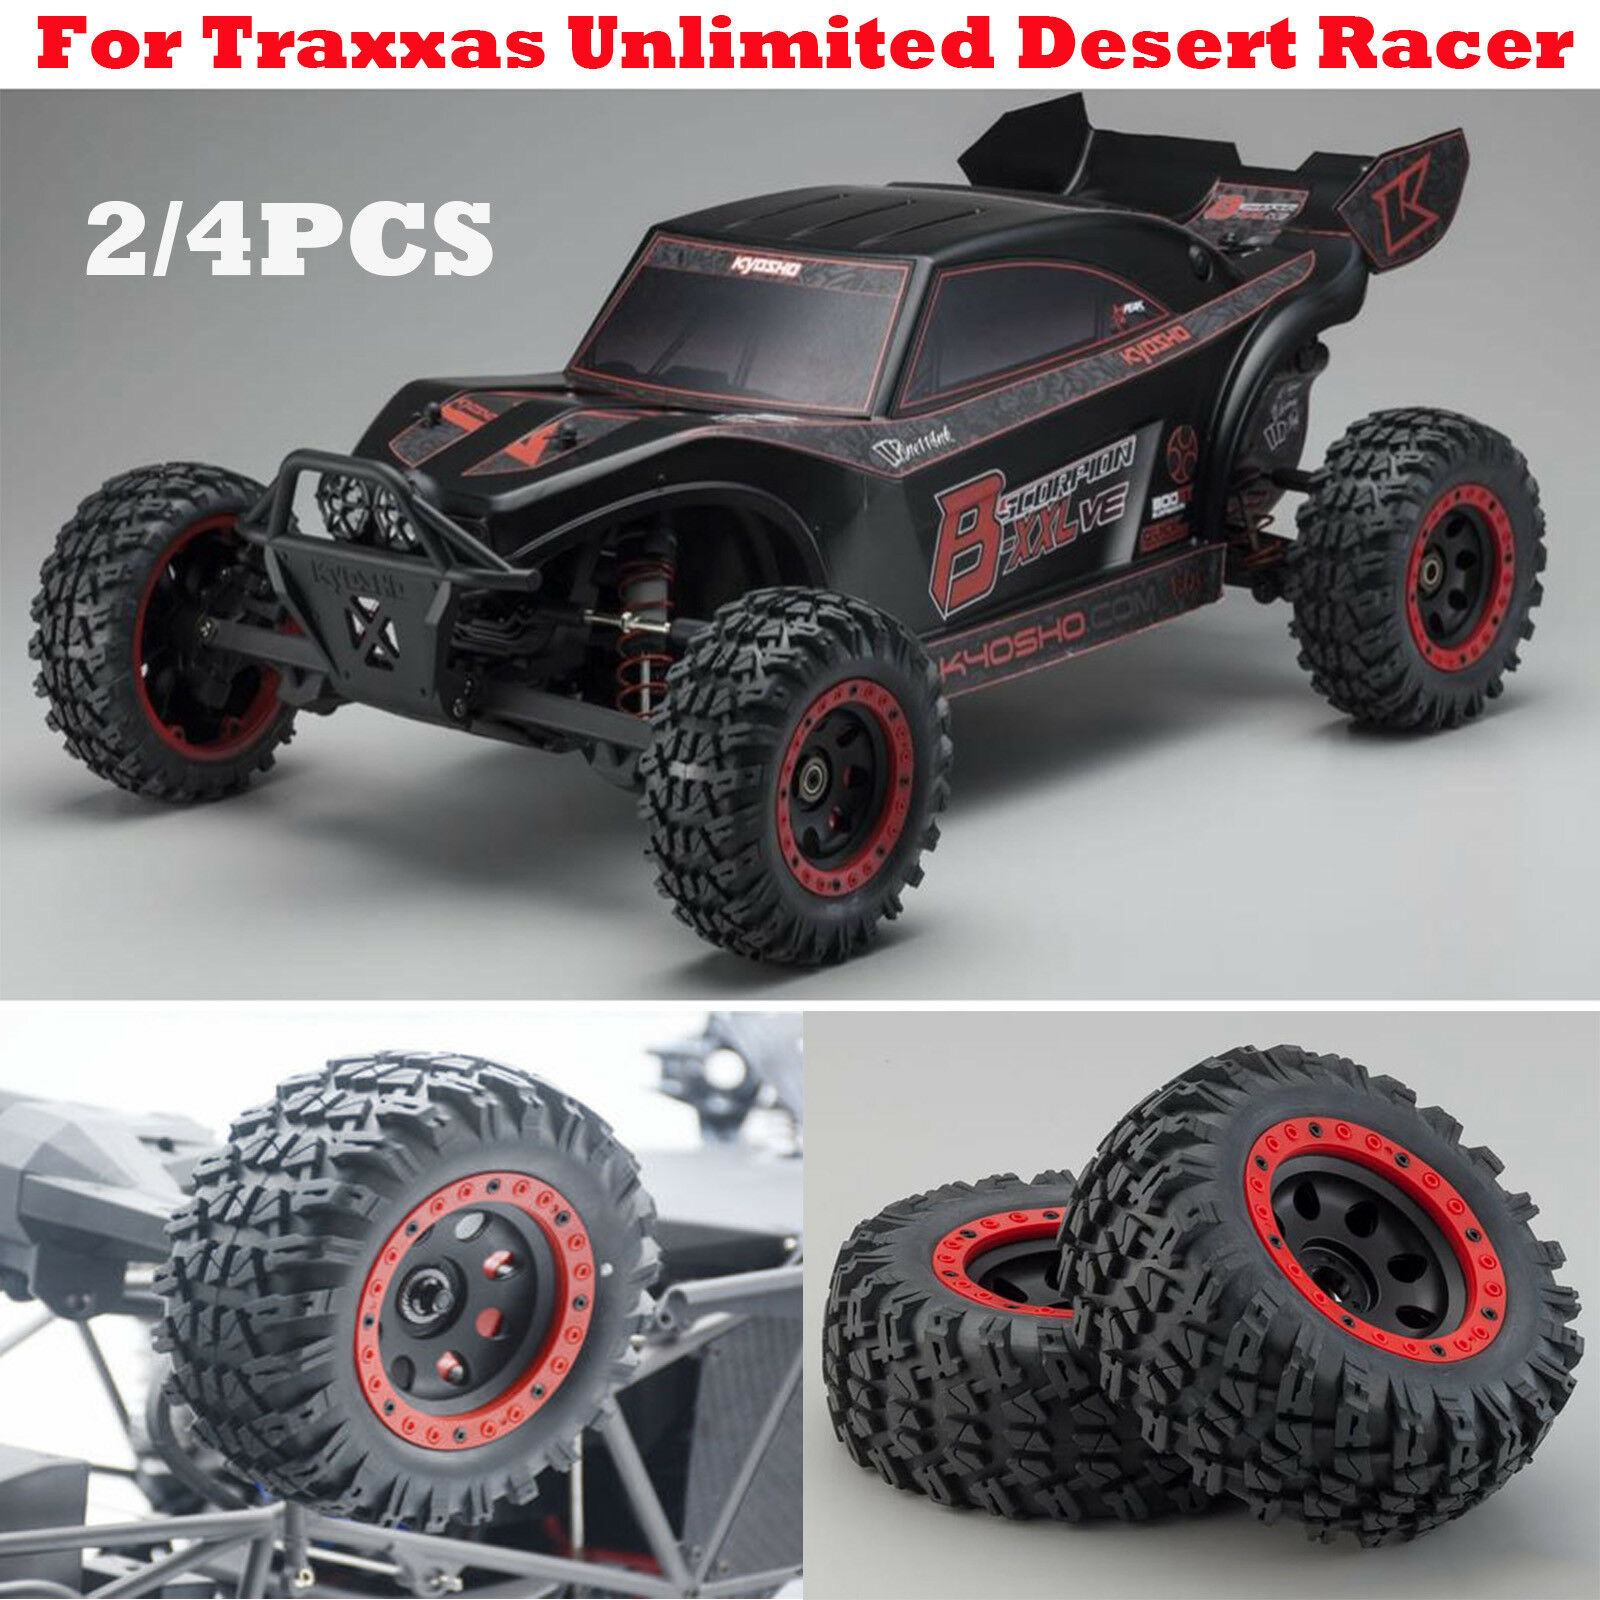 17mm Big Tires Wheel without Paste for 1/7 RC Traxxas Unlimited Desert Racer UDR